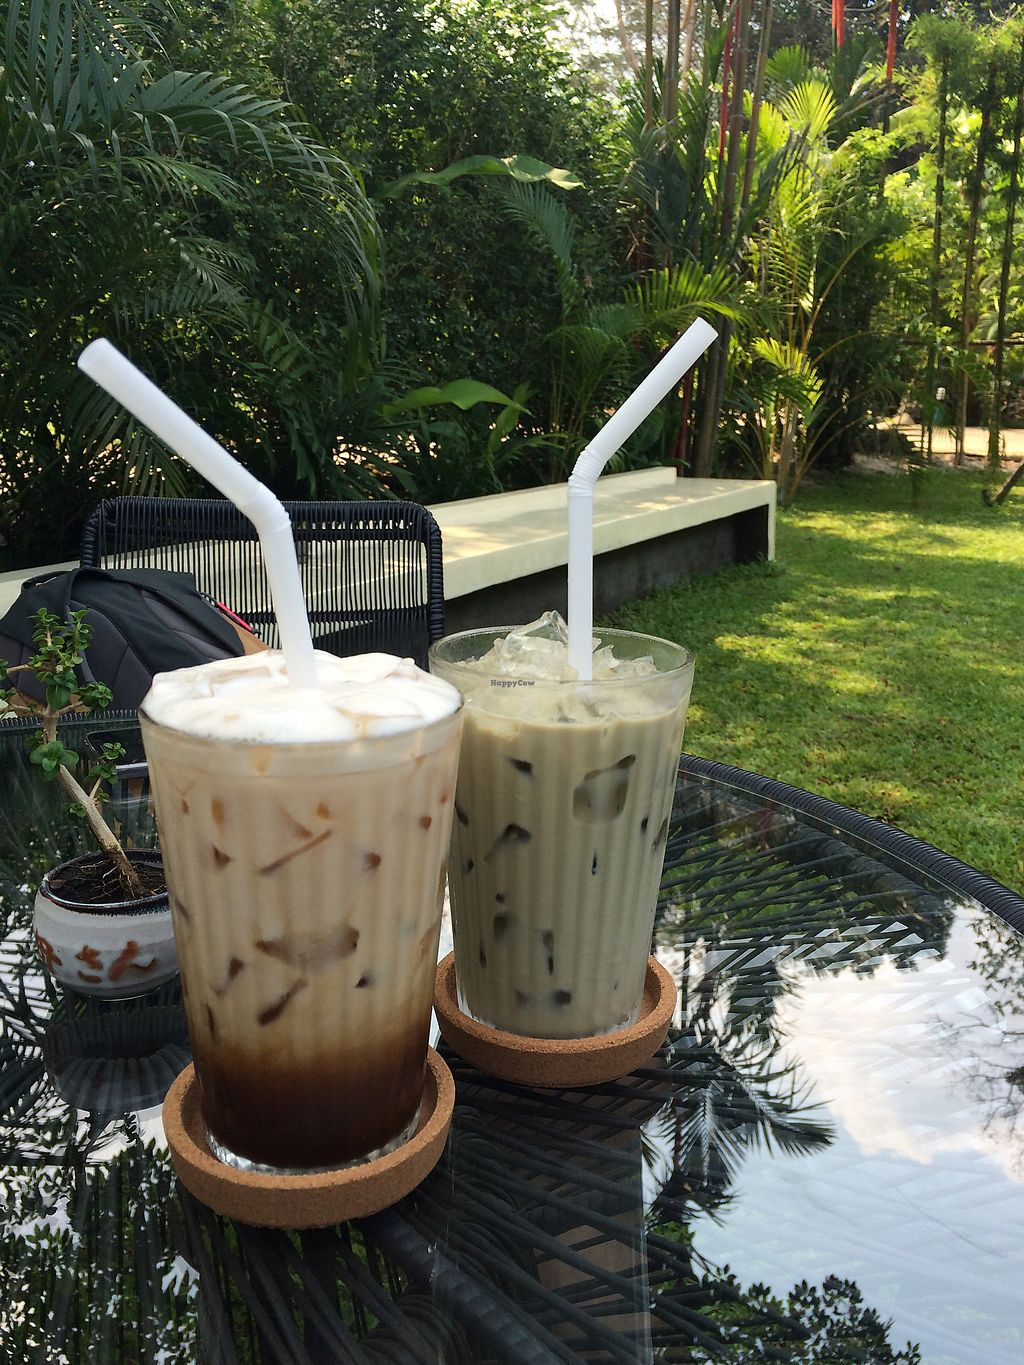 """Photo of Fig Cafe  by <a href=""""/members/profile/VeroniqueVanBuynder"""">VeroniqueVanBuynder</a> <br/>Ice coffe with almond milk <br/> March 17, 2018  - <a href='/contact/abuse/image/109941/371712'>Report</a>"""